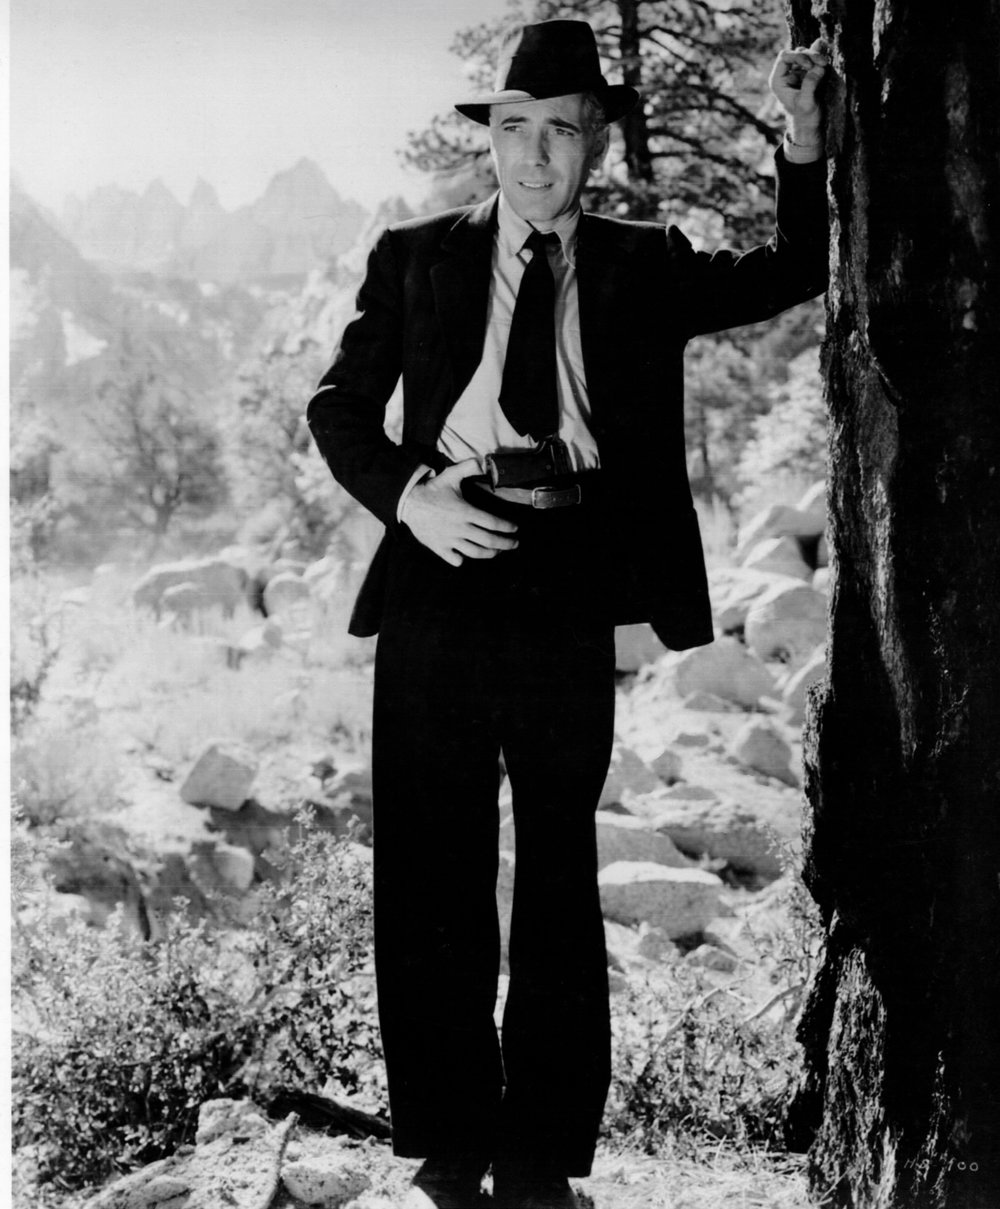 Humphrey Bogart stands in his iconic pose as Roy Earle on the cliffs in front of Mt. Whitney.